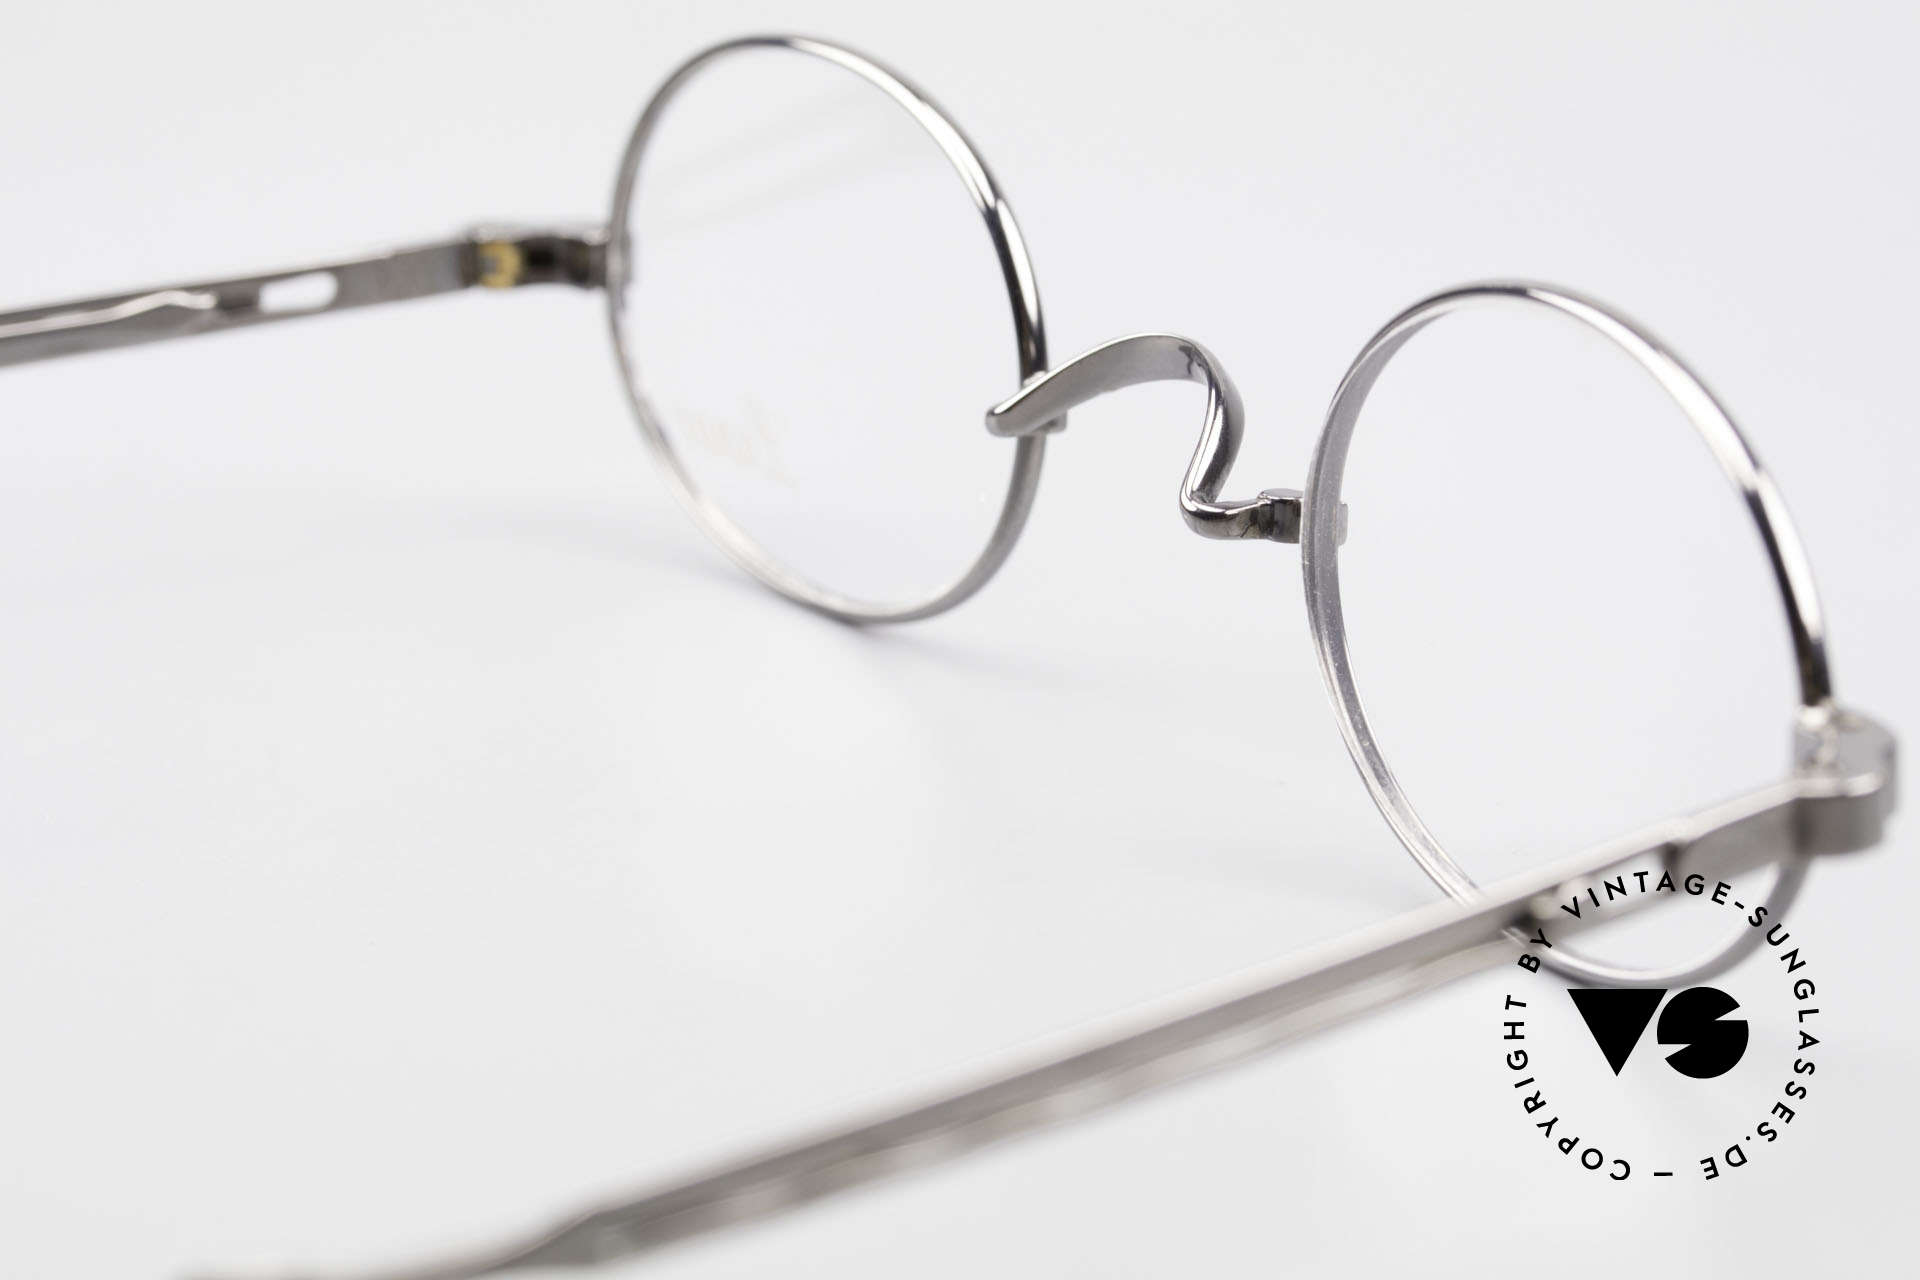 Lunor I 22 Telescopic Oval Frame Extendable Arms, Size: small, Made for Men and Women